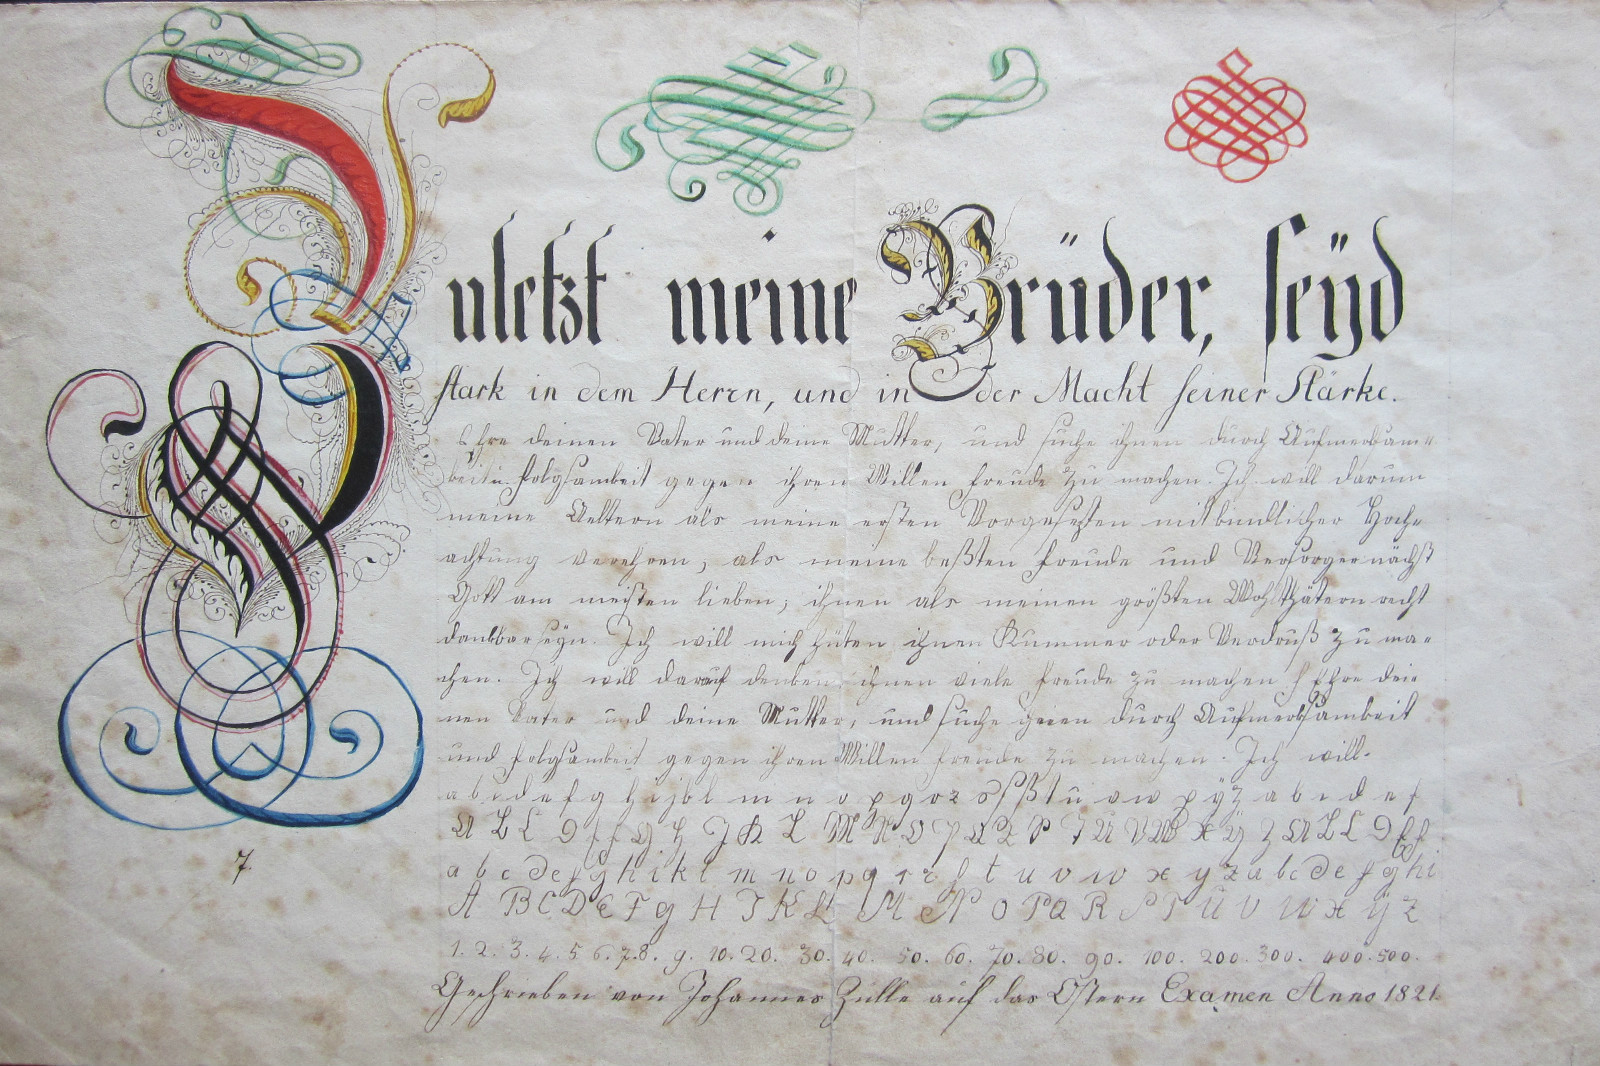 A Vibrantly Illuminated Fraktur Vorschrift From 1821 The Text Is Ephesians 610 12 And Followed By Lowercase Alphabet An Uppercase